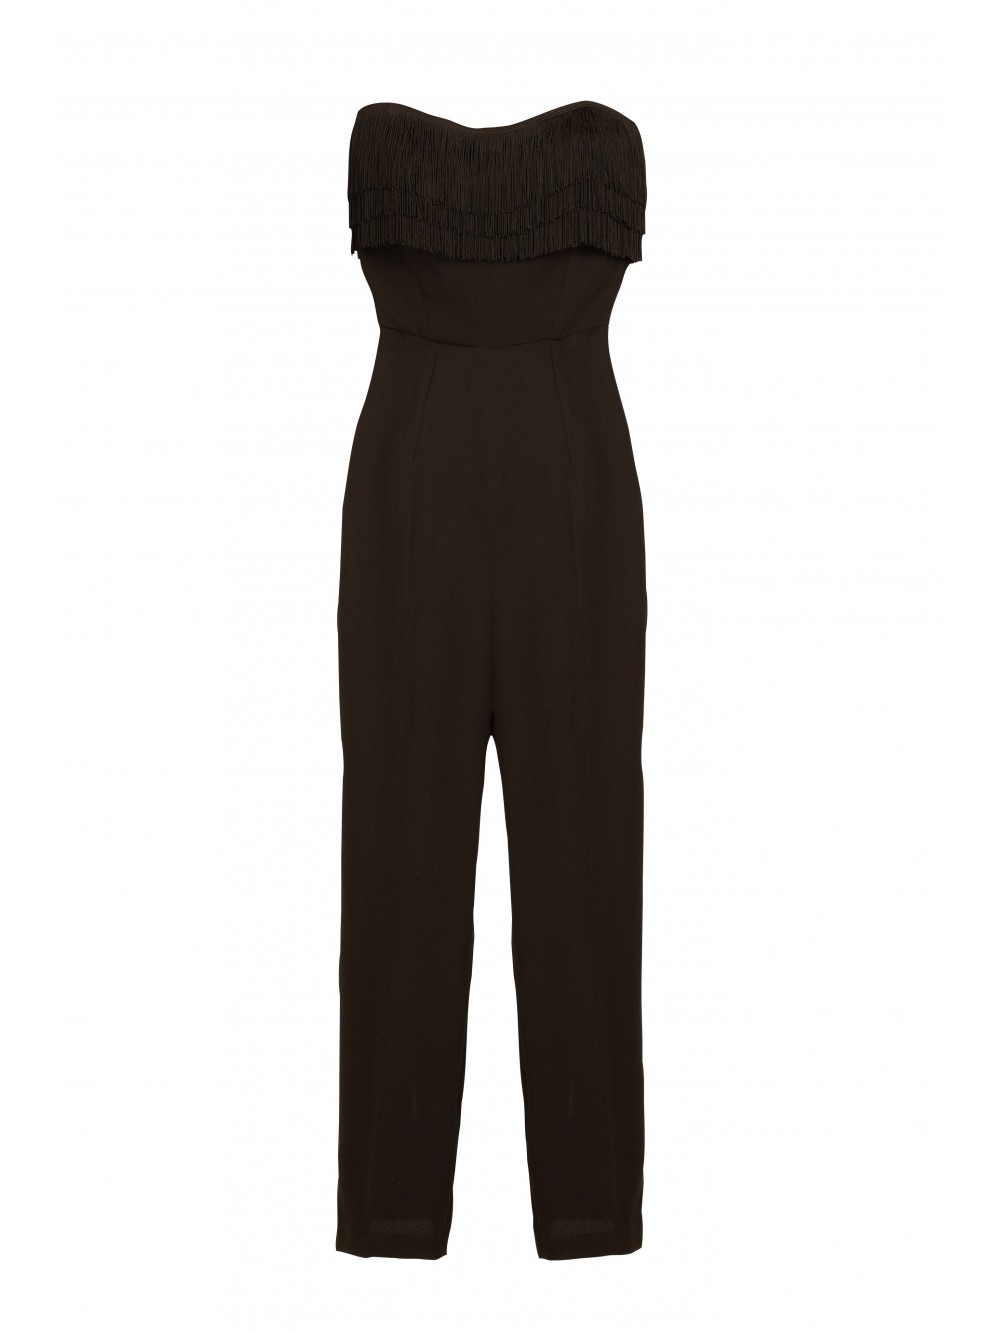 Strapless crepe jumpsuit with fringes | Simplicity